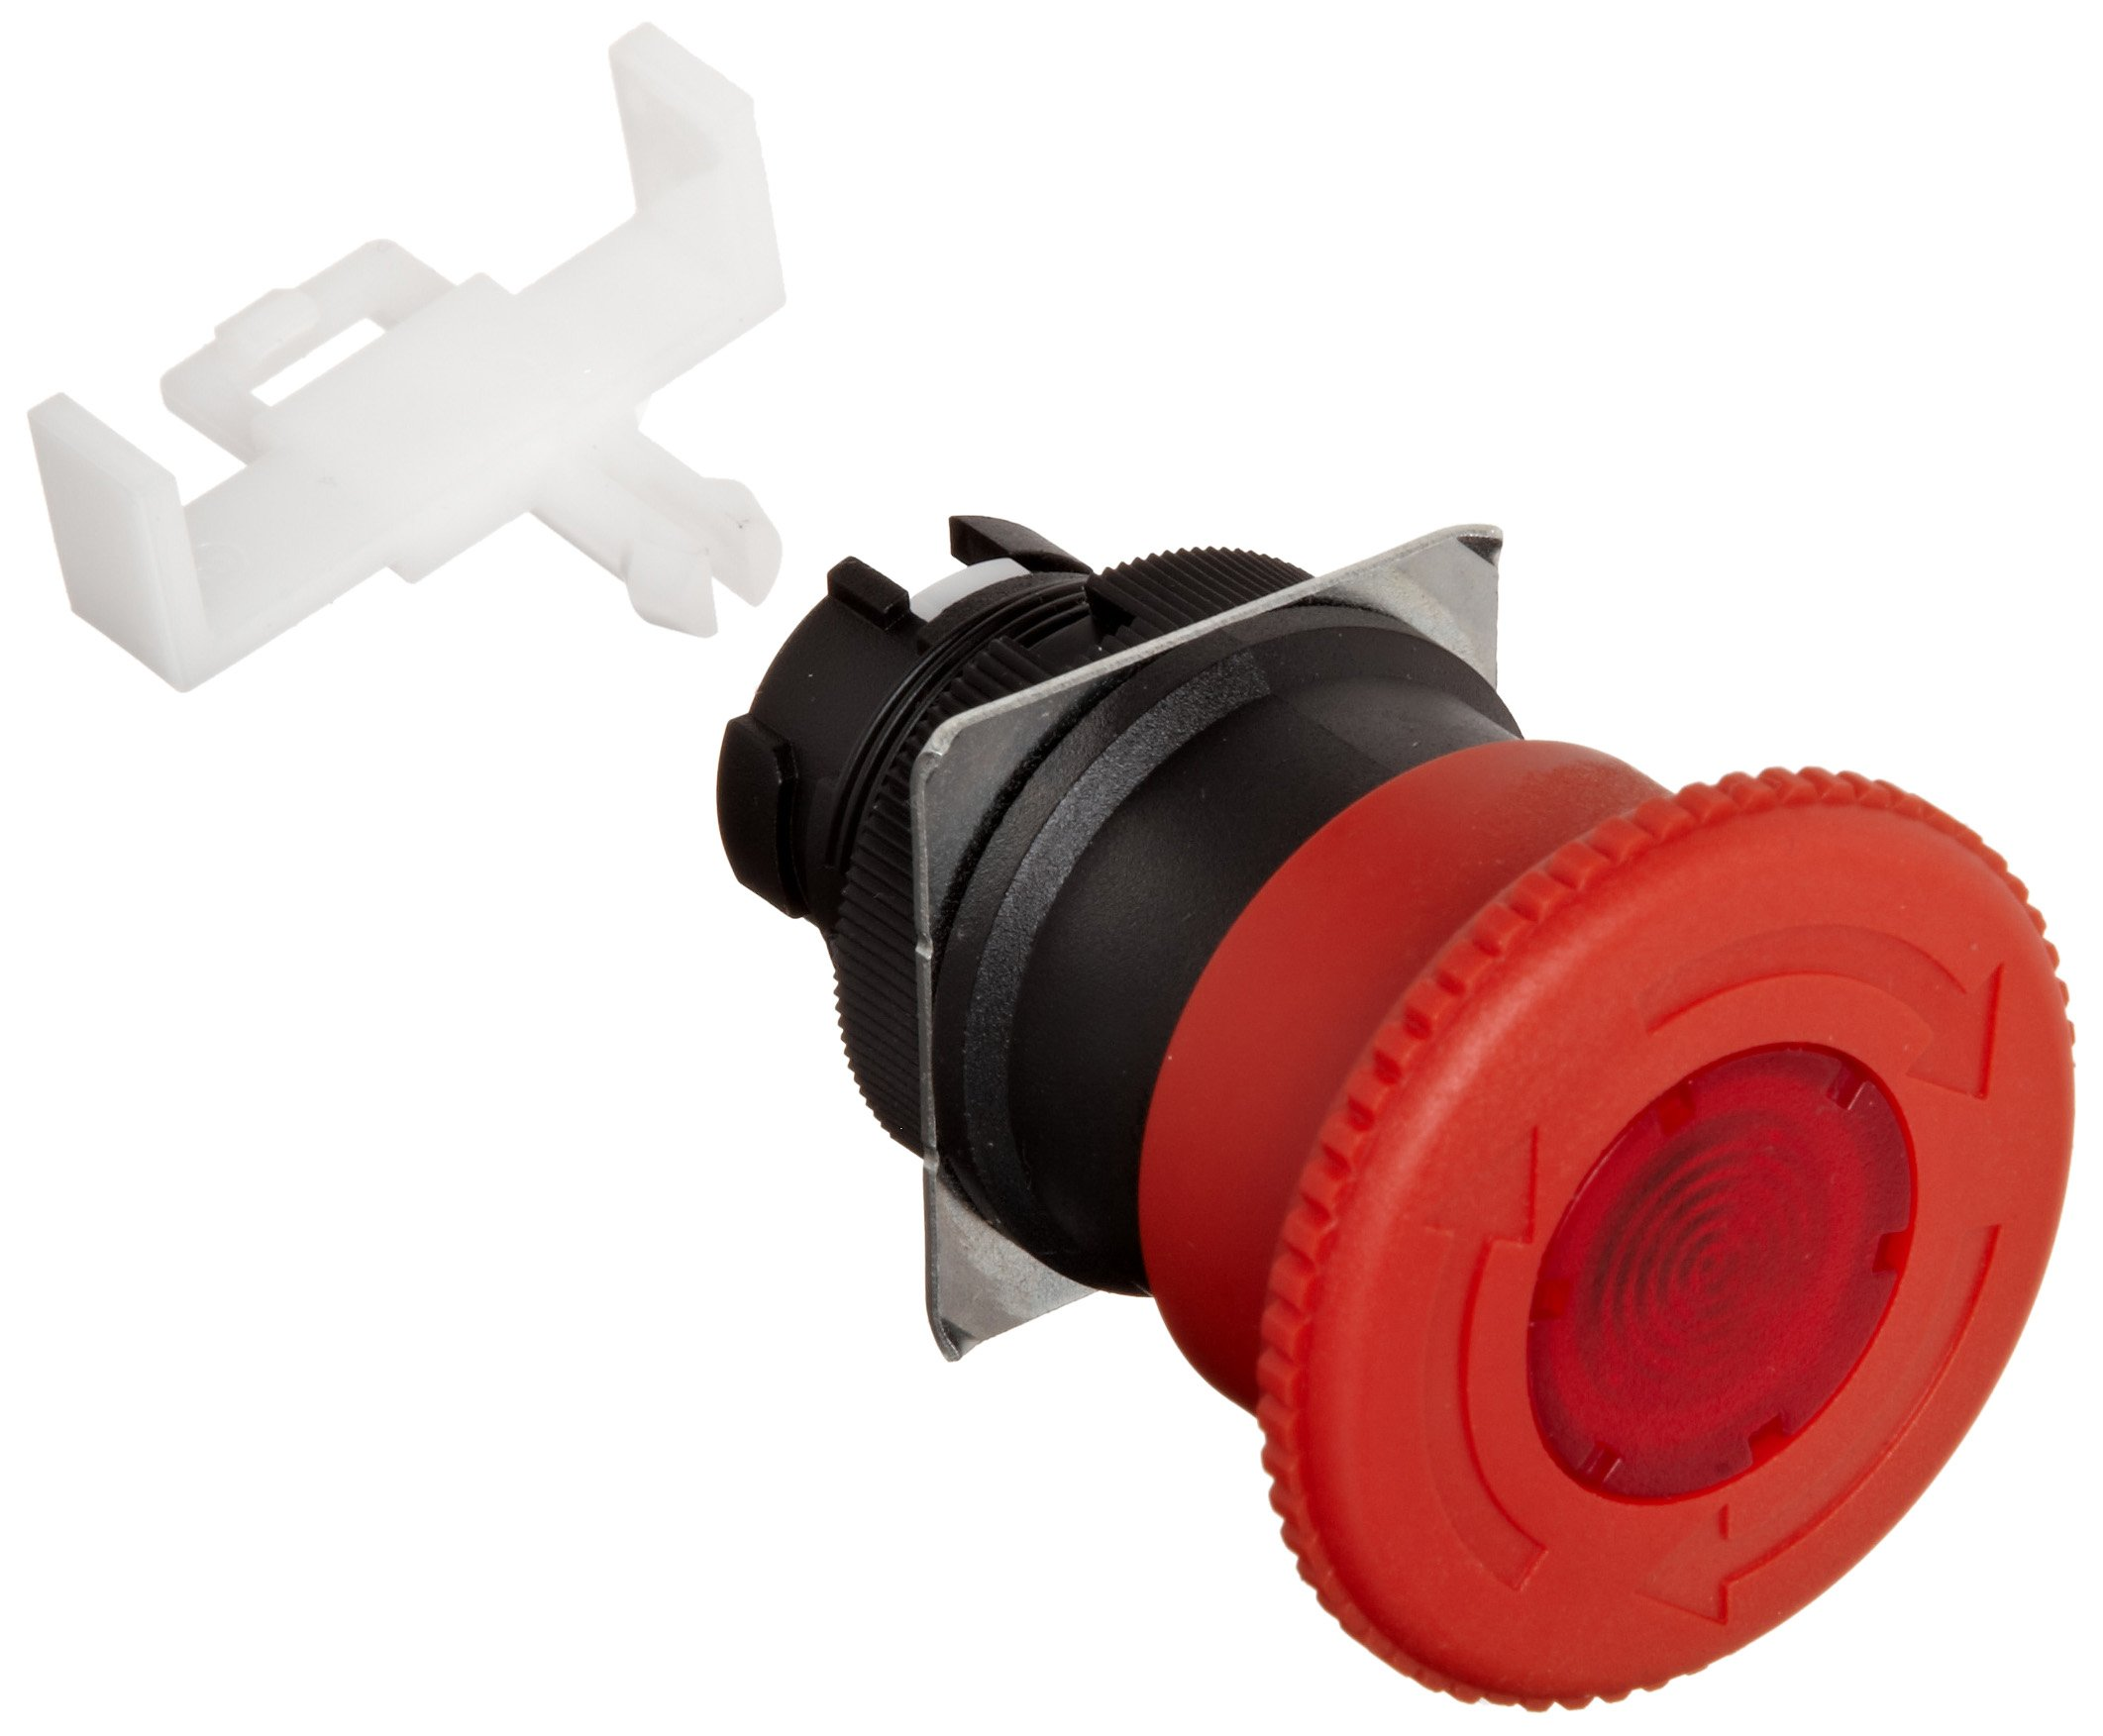 Omron A22EL-M Emergency Stop Operation Unit, IP65 Oil-Resistant, Lighted, Push-Lock Turn-Reset Operation, Red, 40mm Diameter